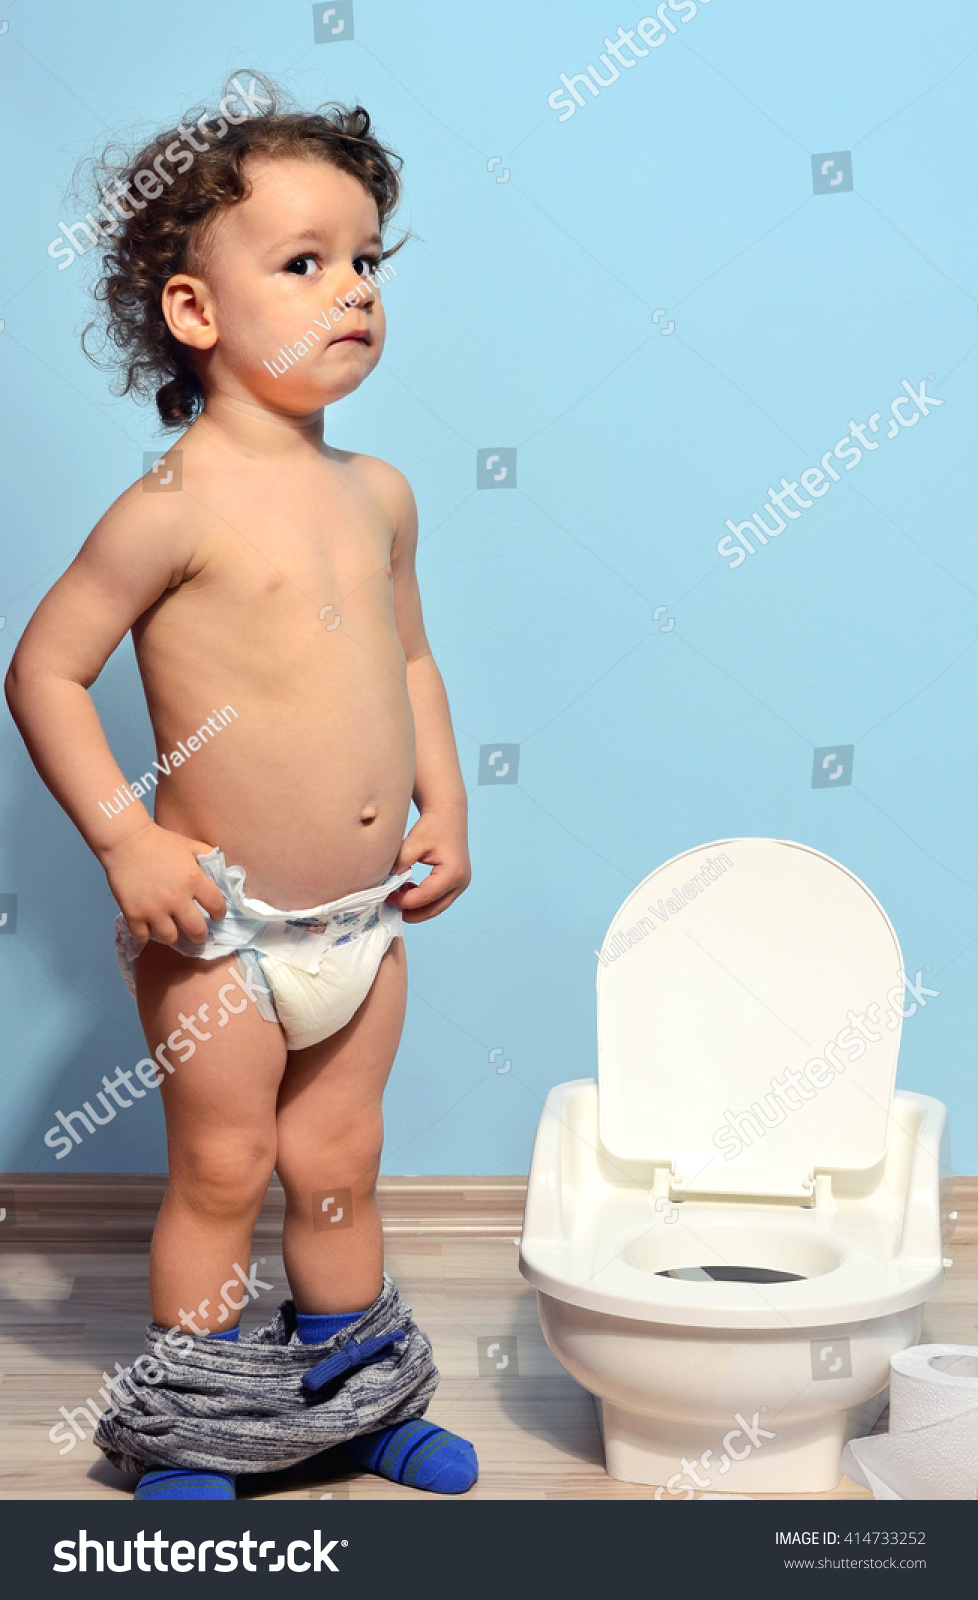 Toddler afraid to sit on the potty. Cute kid potty training for pee and poo